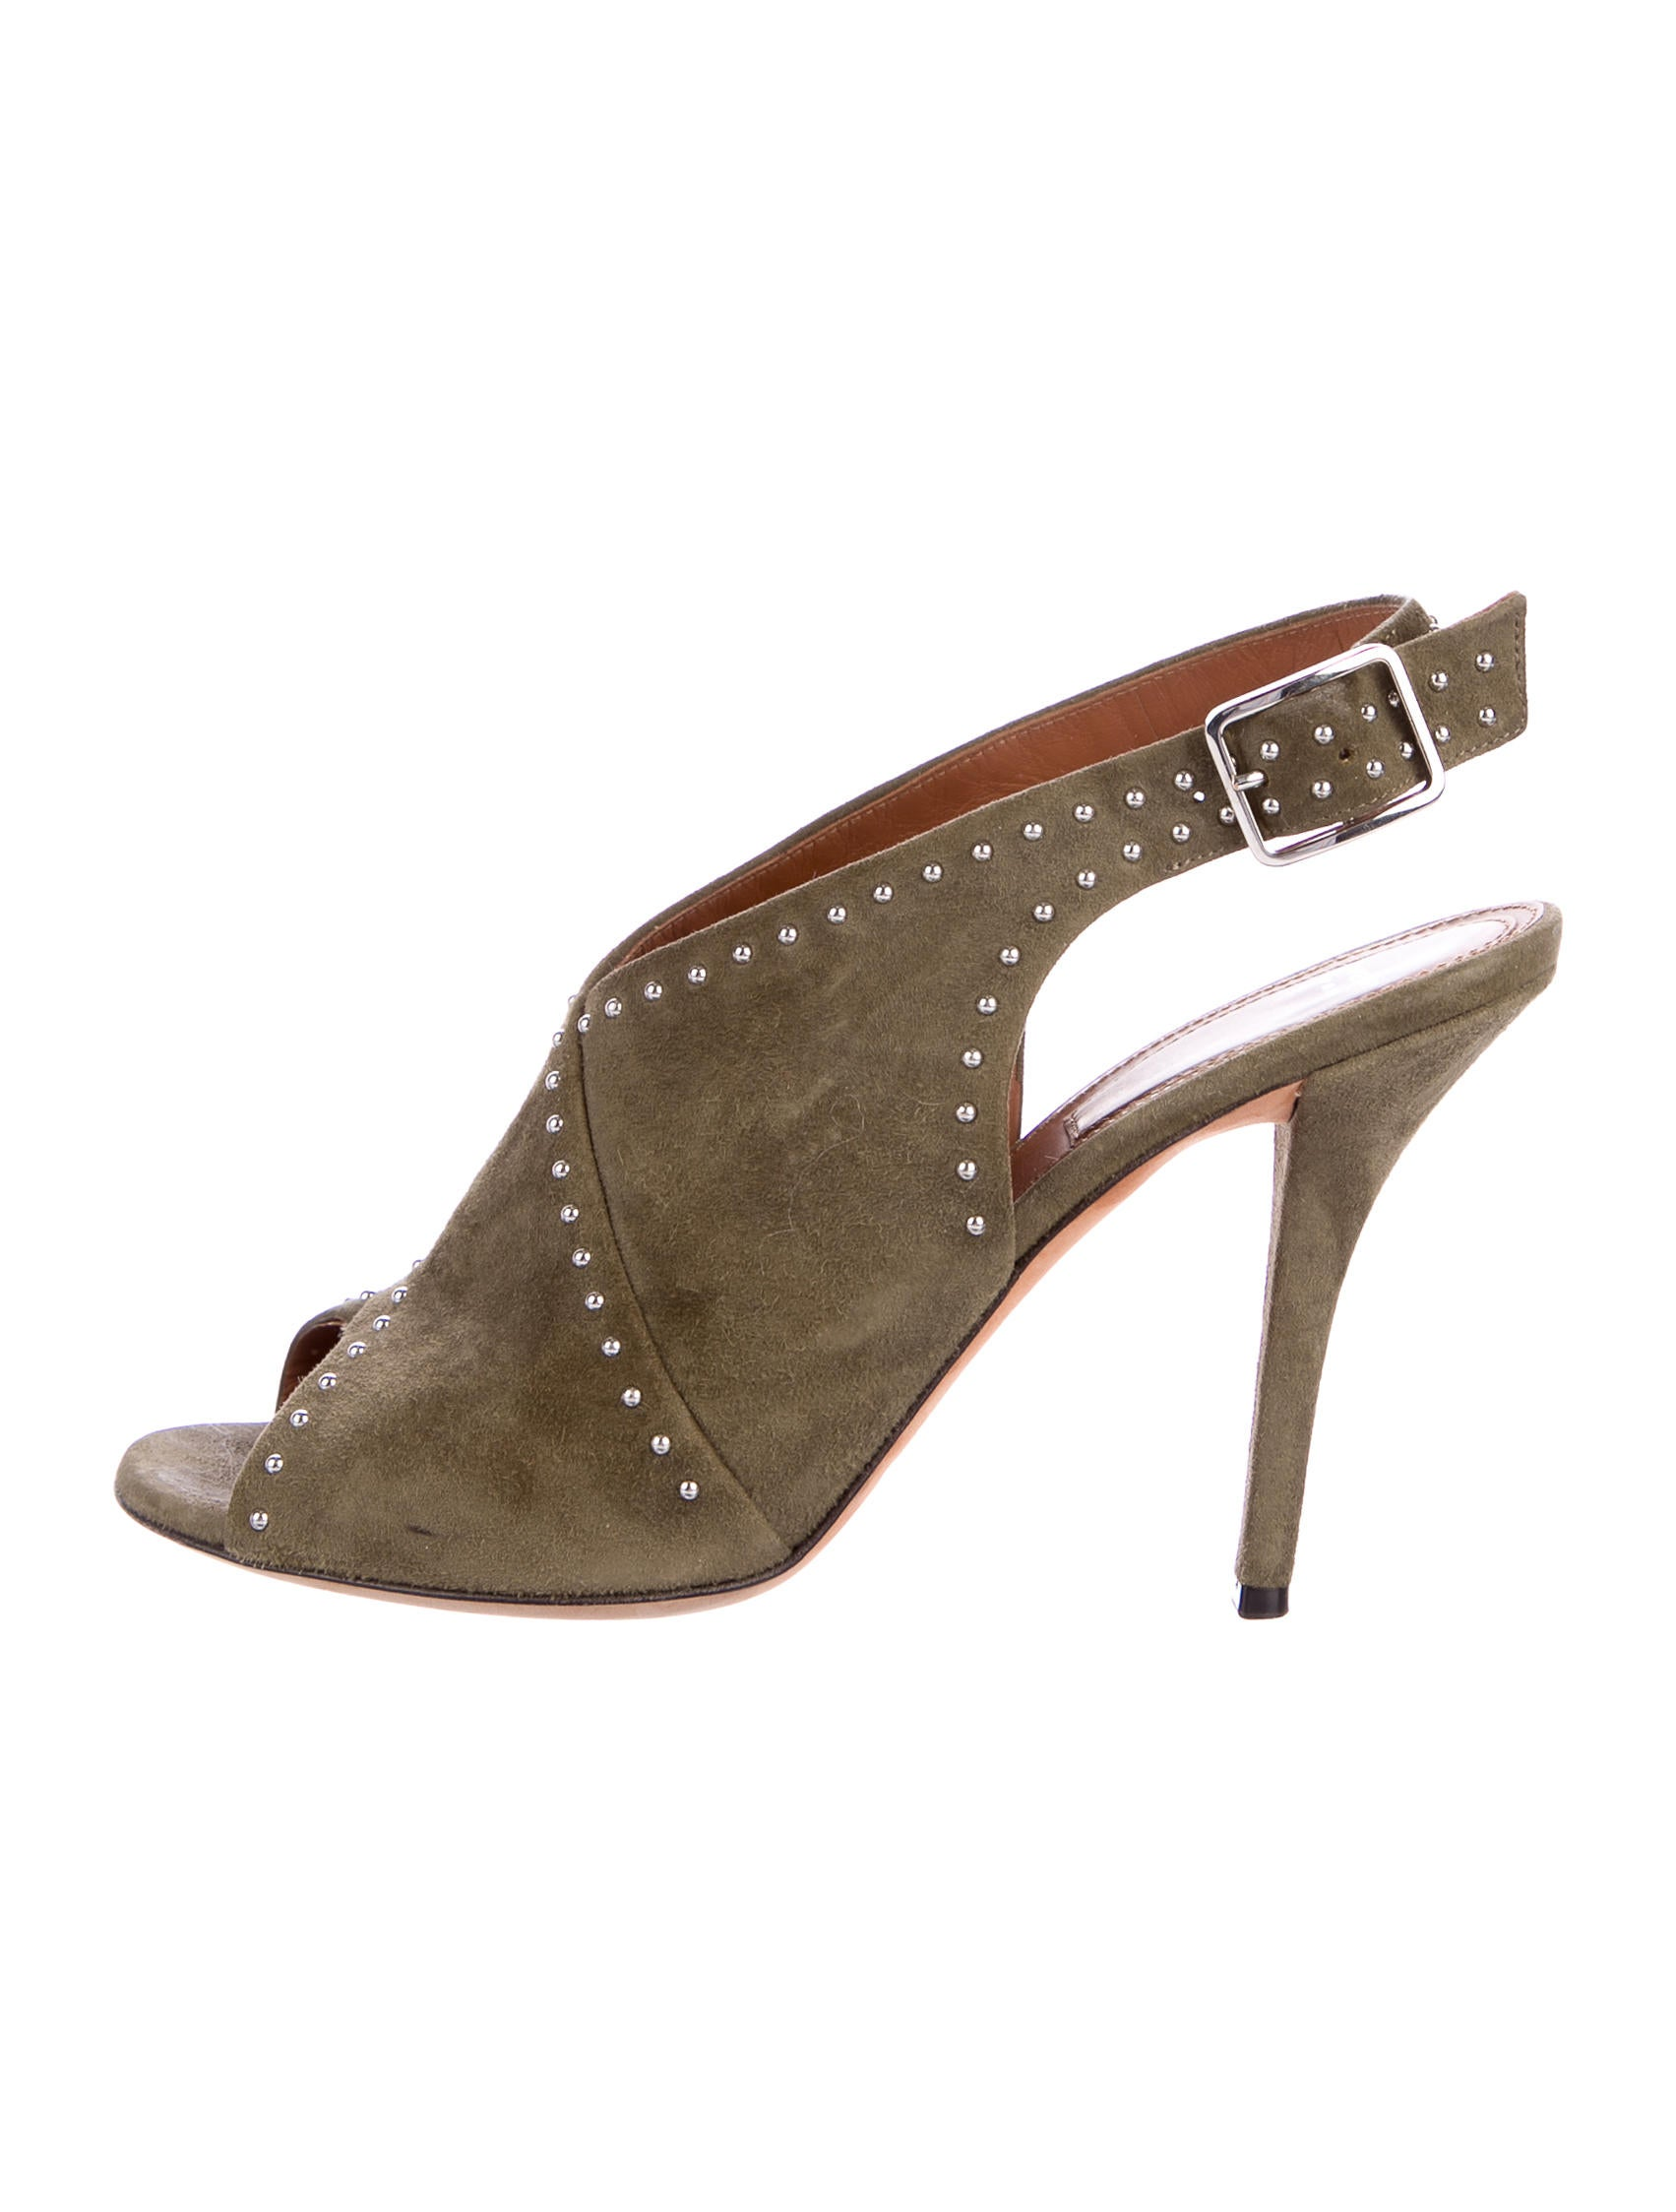 Givenchy Suede Slingback Booties best wholesale sale online discount best store to get rNpQVg